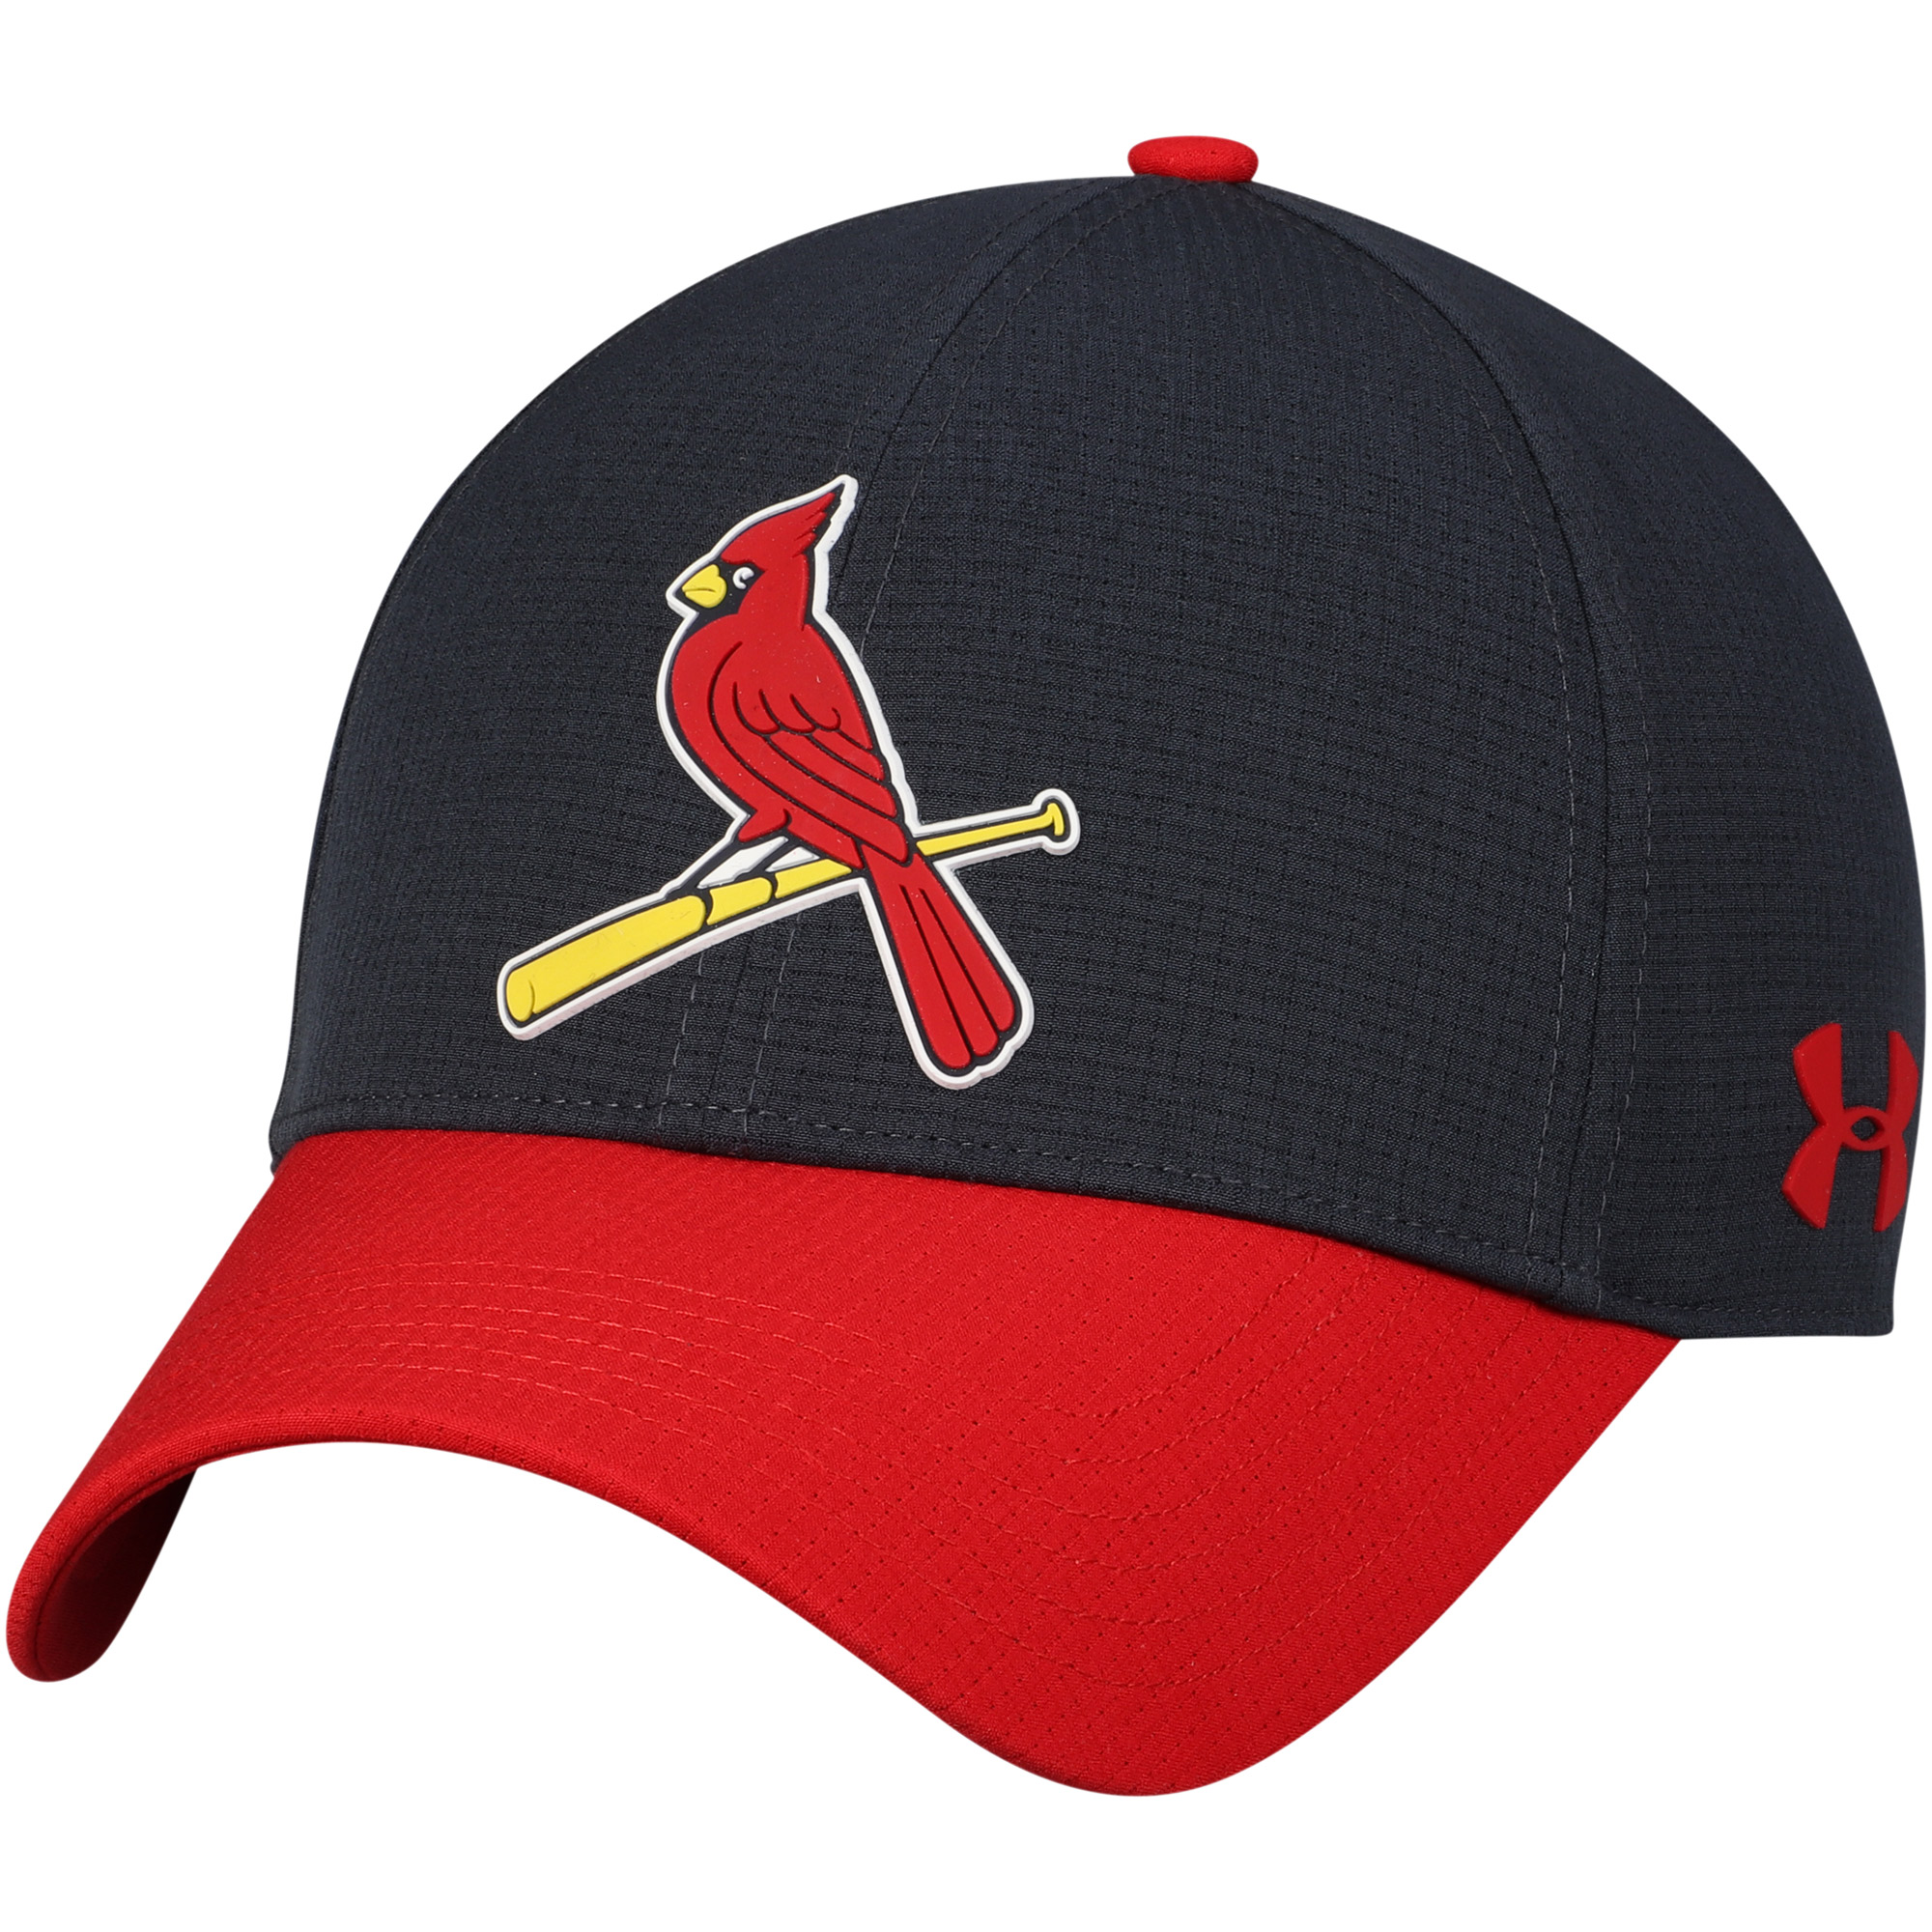 St. Louis Cardinals Under Armour MLB Driver Cap 2.0 Adjustable Hat - Navy - OSFA